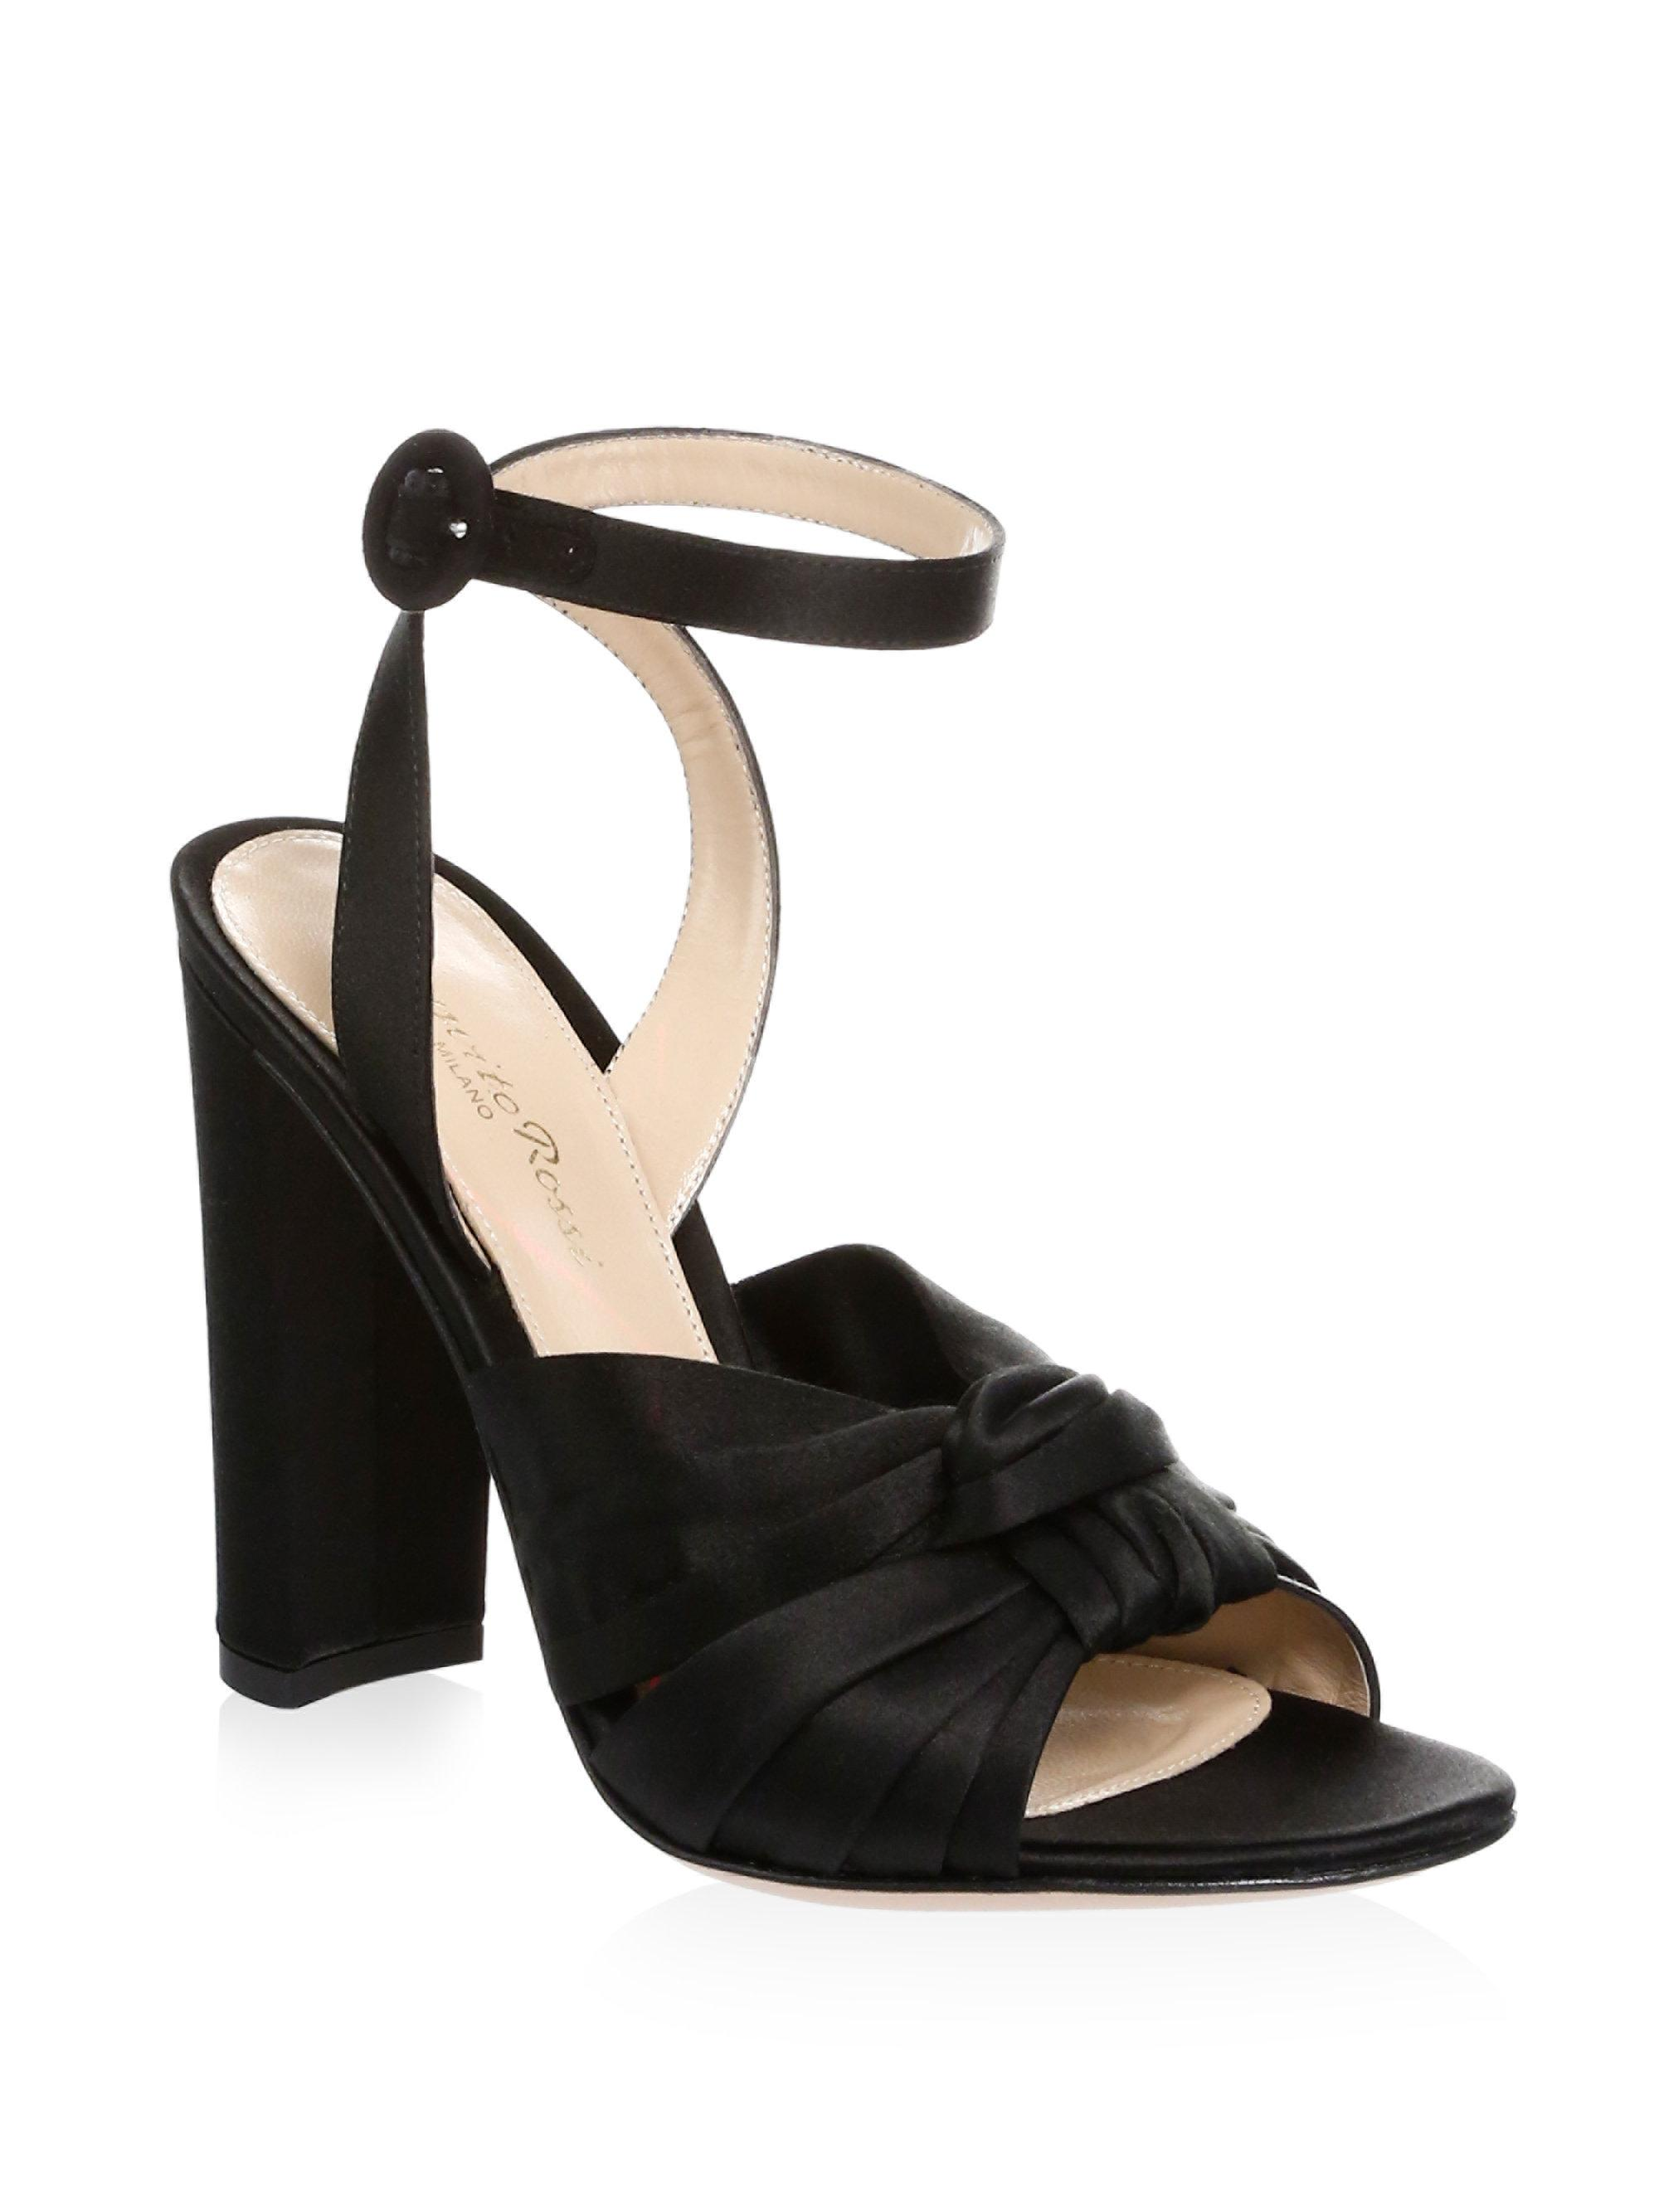 e2ae3603bbd Gianvito Rossi Knot Silk Ankle Strap Pumps mzA5rGx - theplayersbible.com